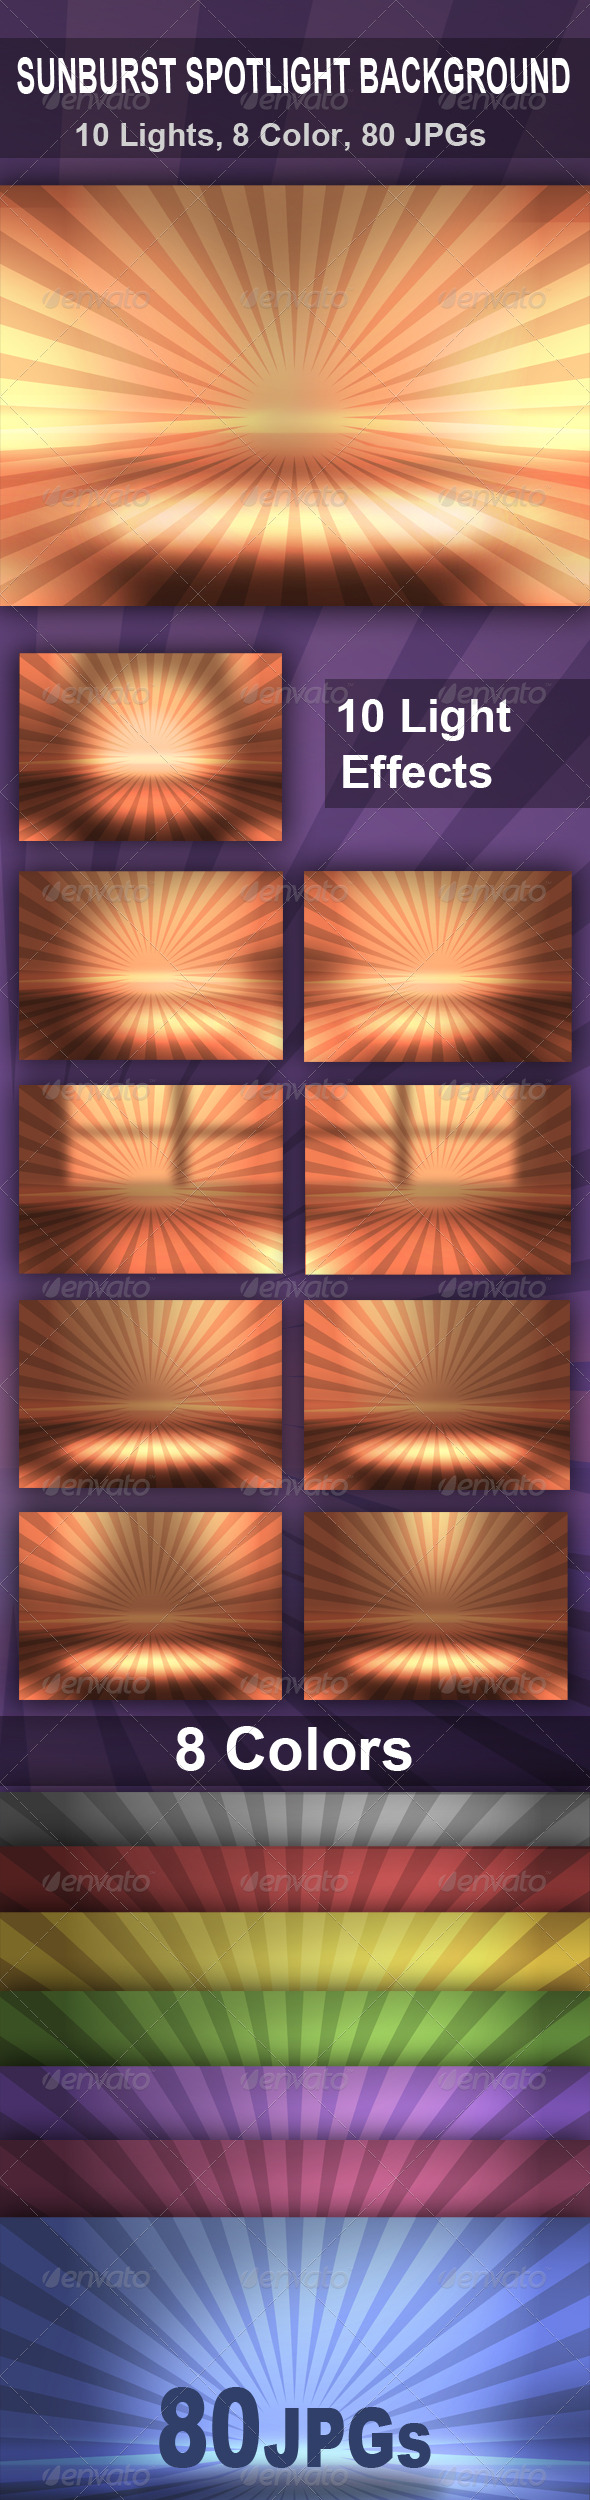 Sunburst Spotlight Background - Backgrounds Graphics